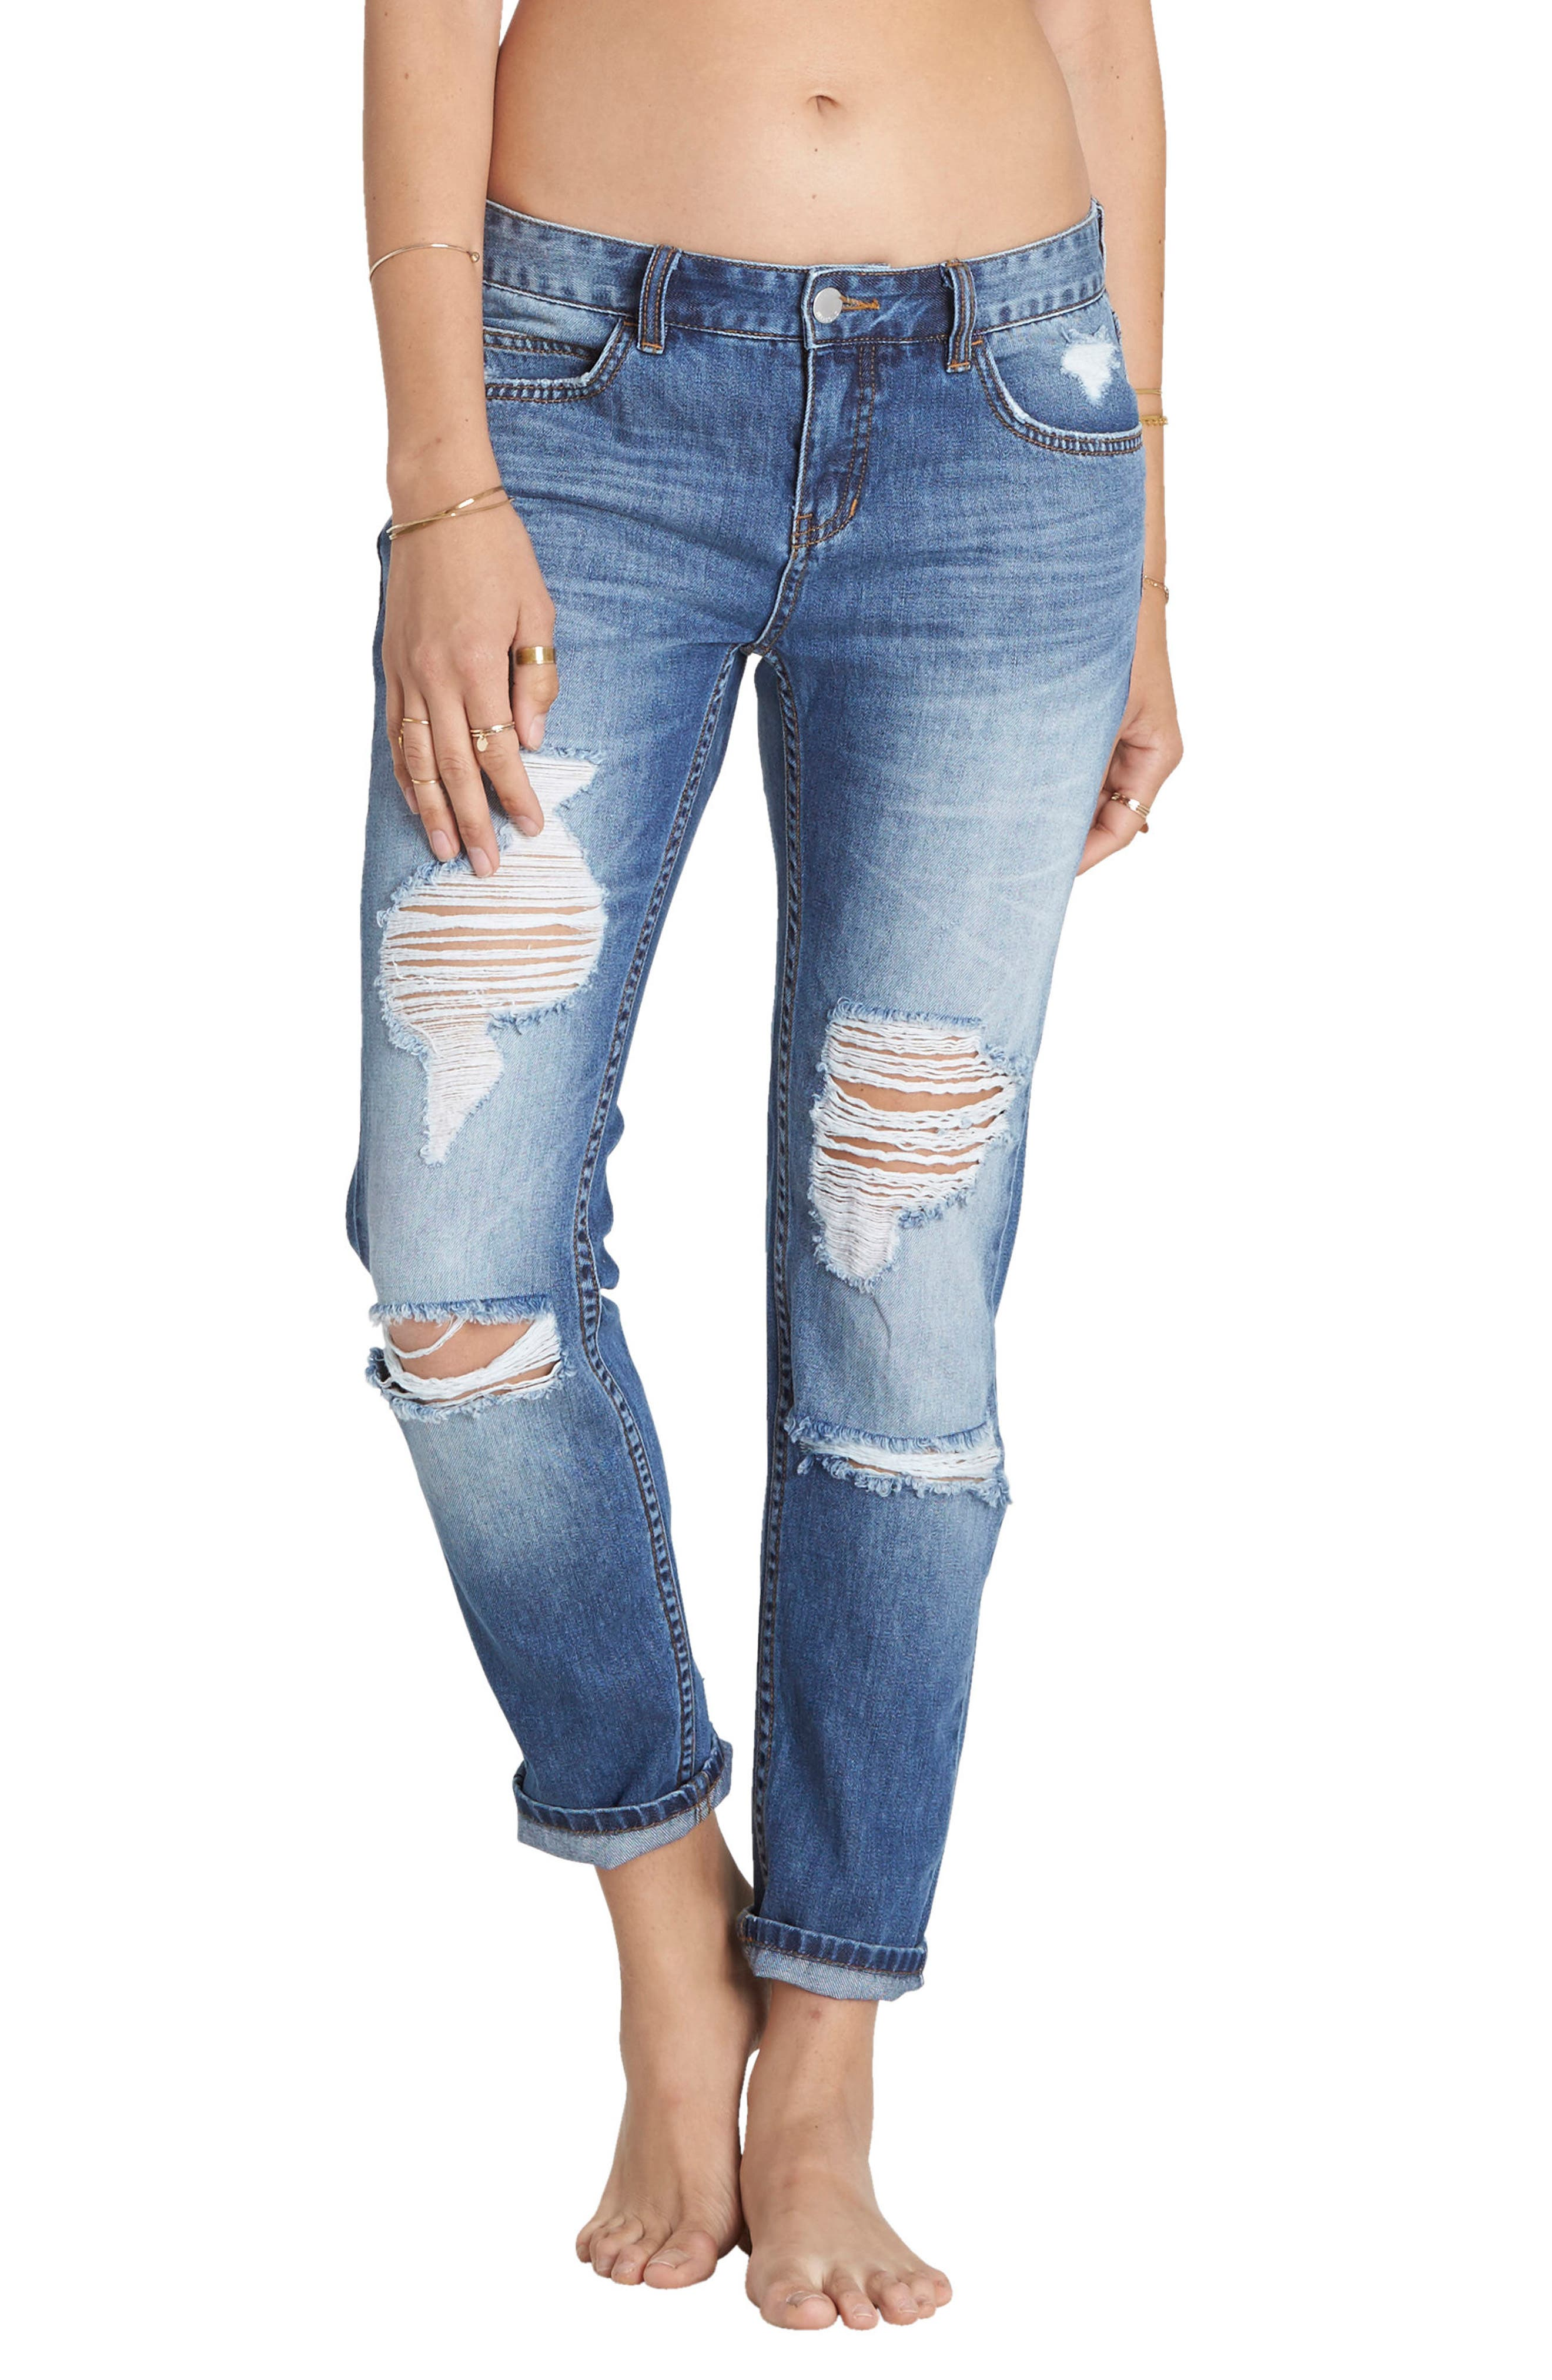 Hey Boy Ripped Girlfriend Jeans,                             Main thumbnail 1, color,                             Pacific